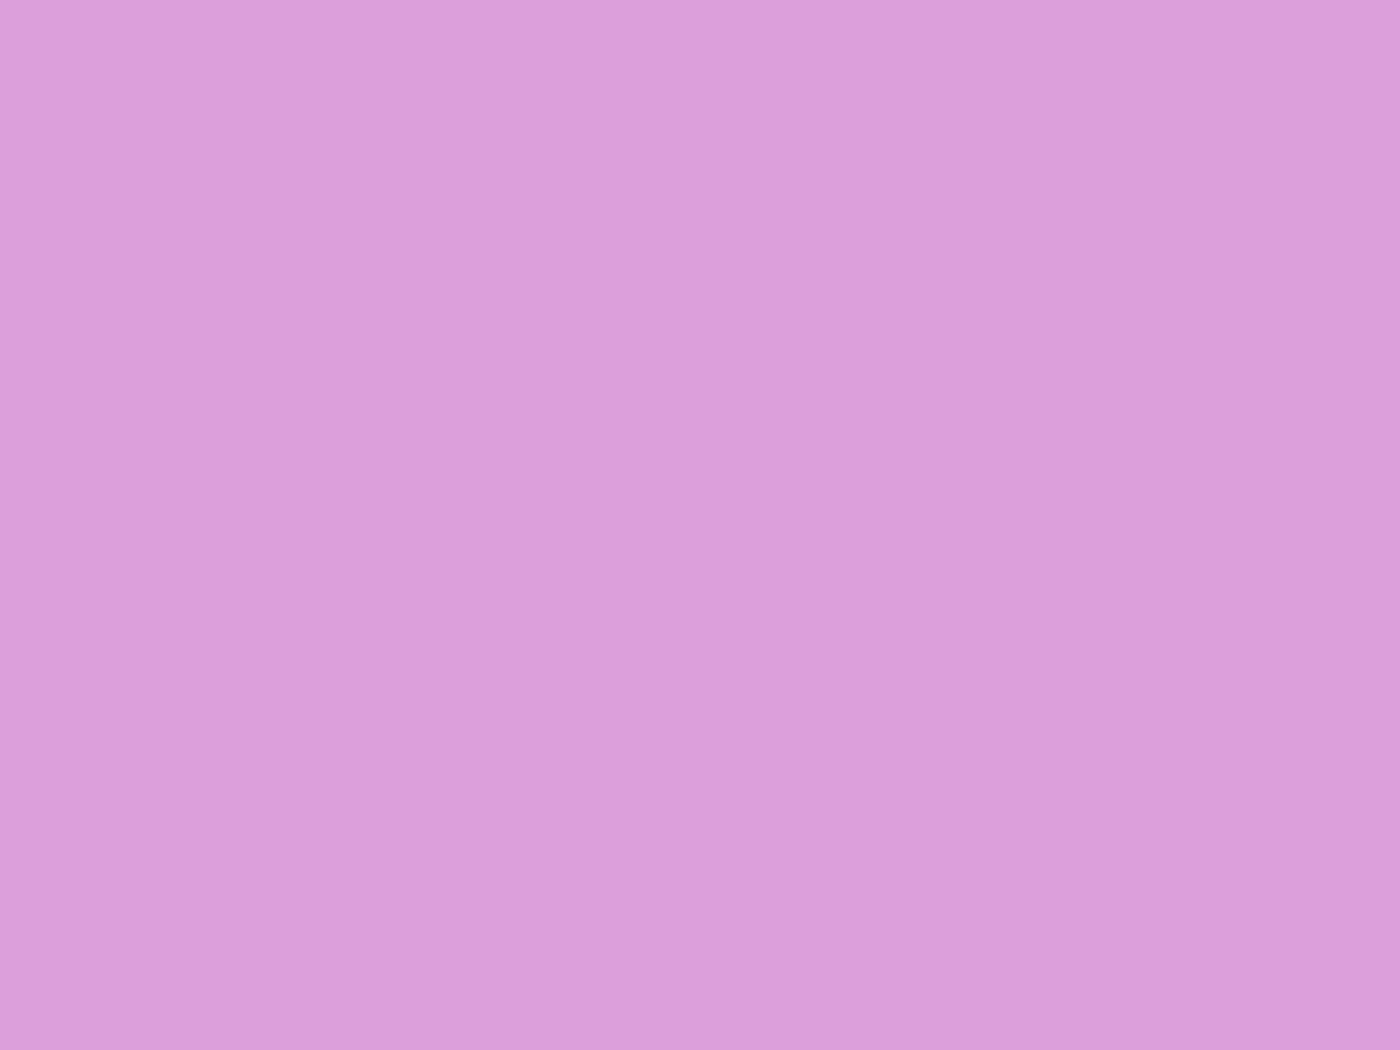 1400x1050 Pale Plum Solid Color Background